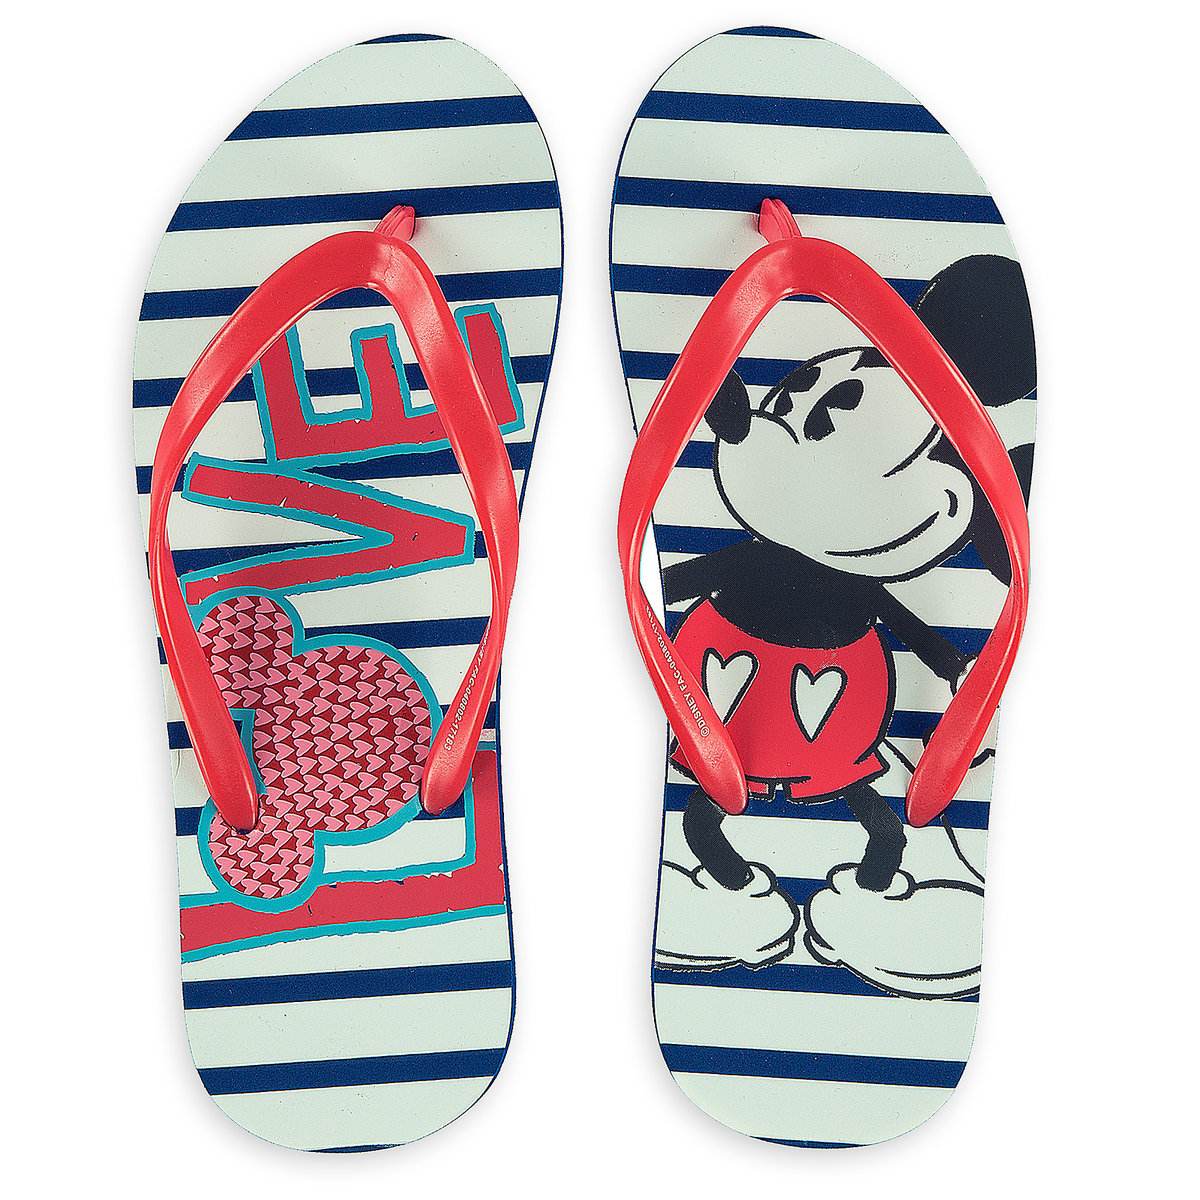 7102c046c06 Add to My Lists. Disney Adult Flip Flops - Mickey Mouse Love